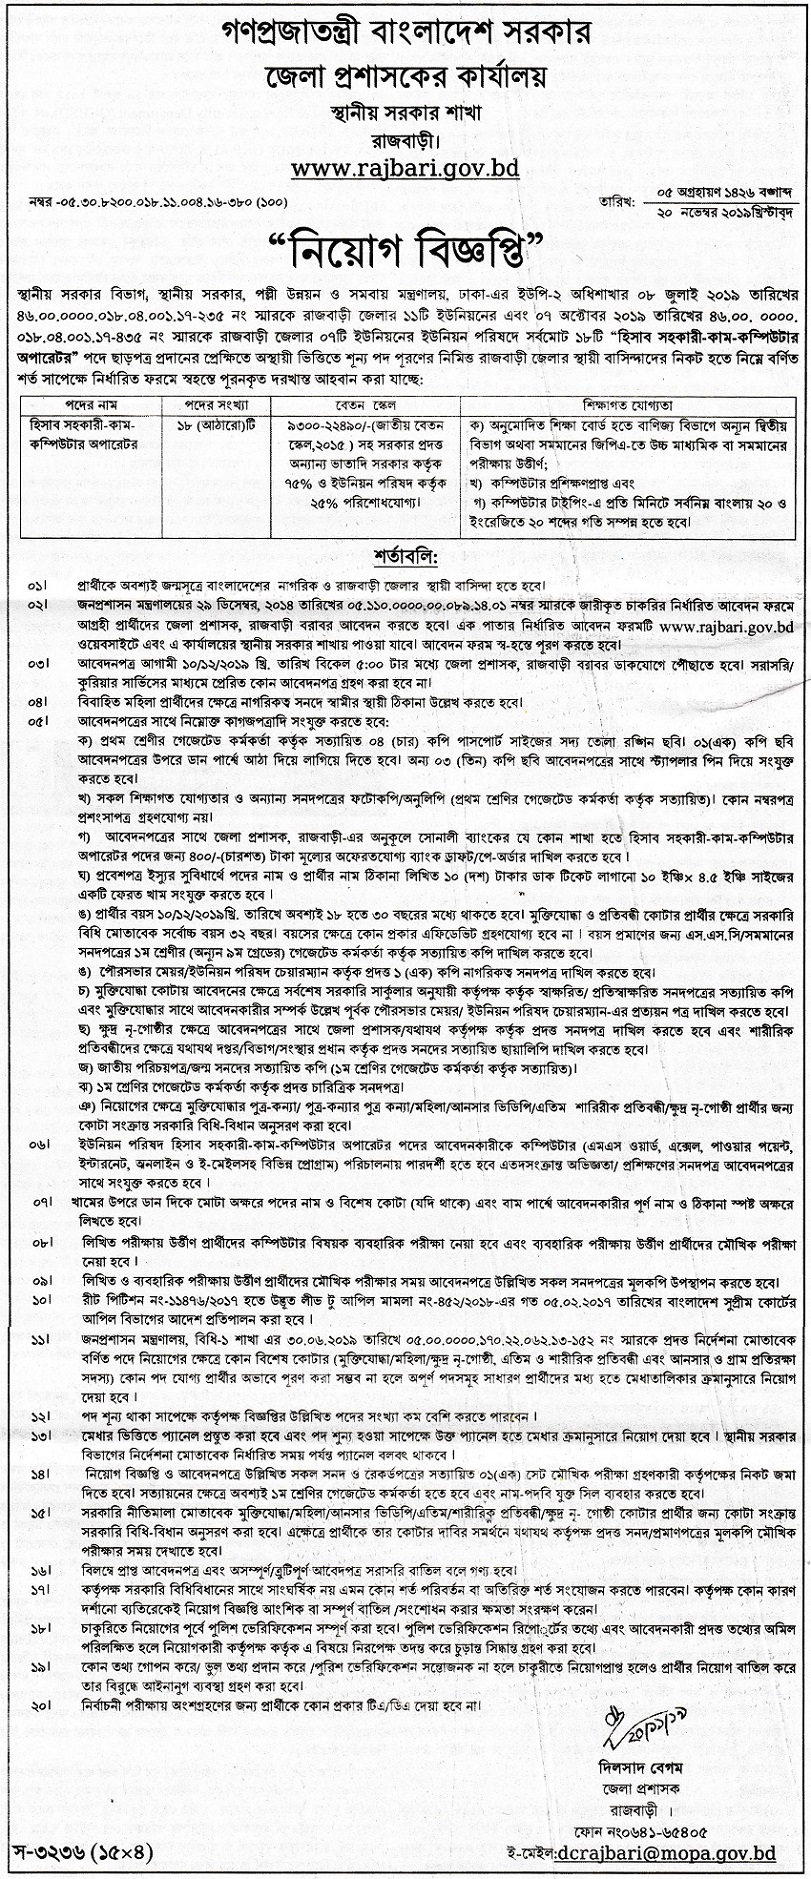 Rajbari Deputy Commissioner's Office Job Circular 2019